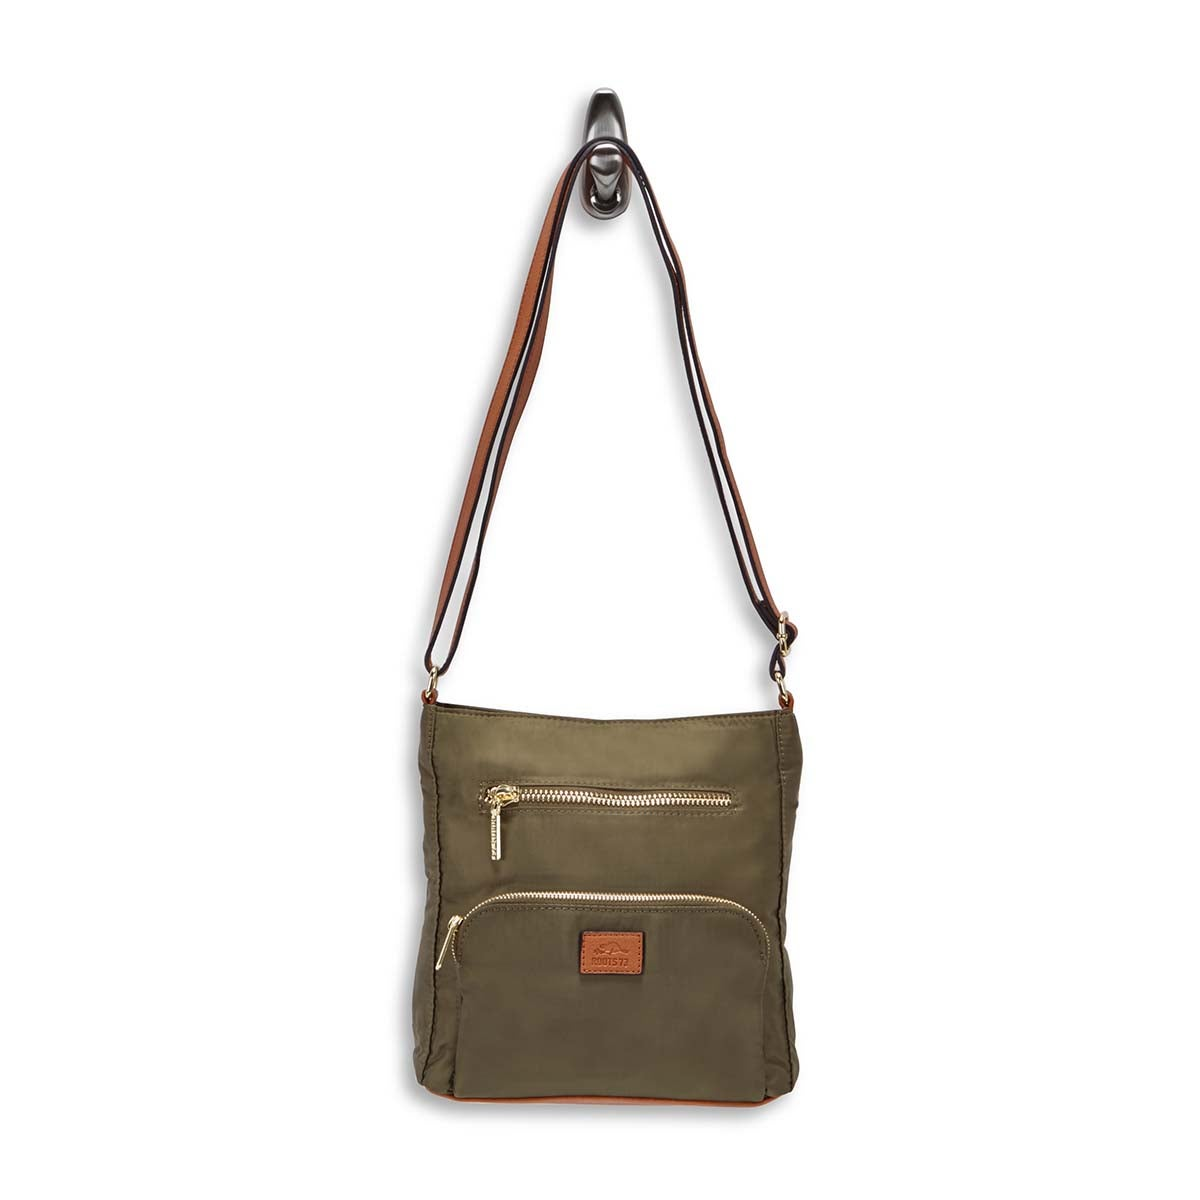 Lds Roots73 kki 2 front pocket crossbody